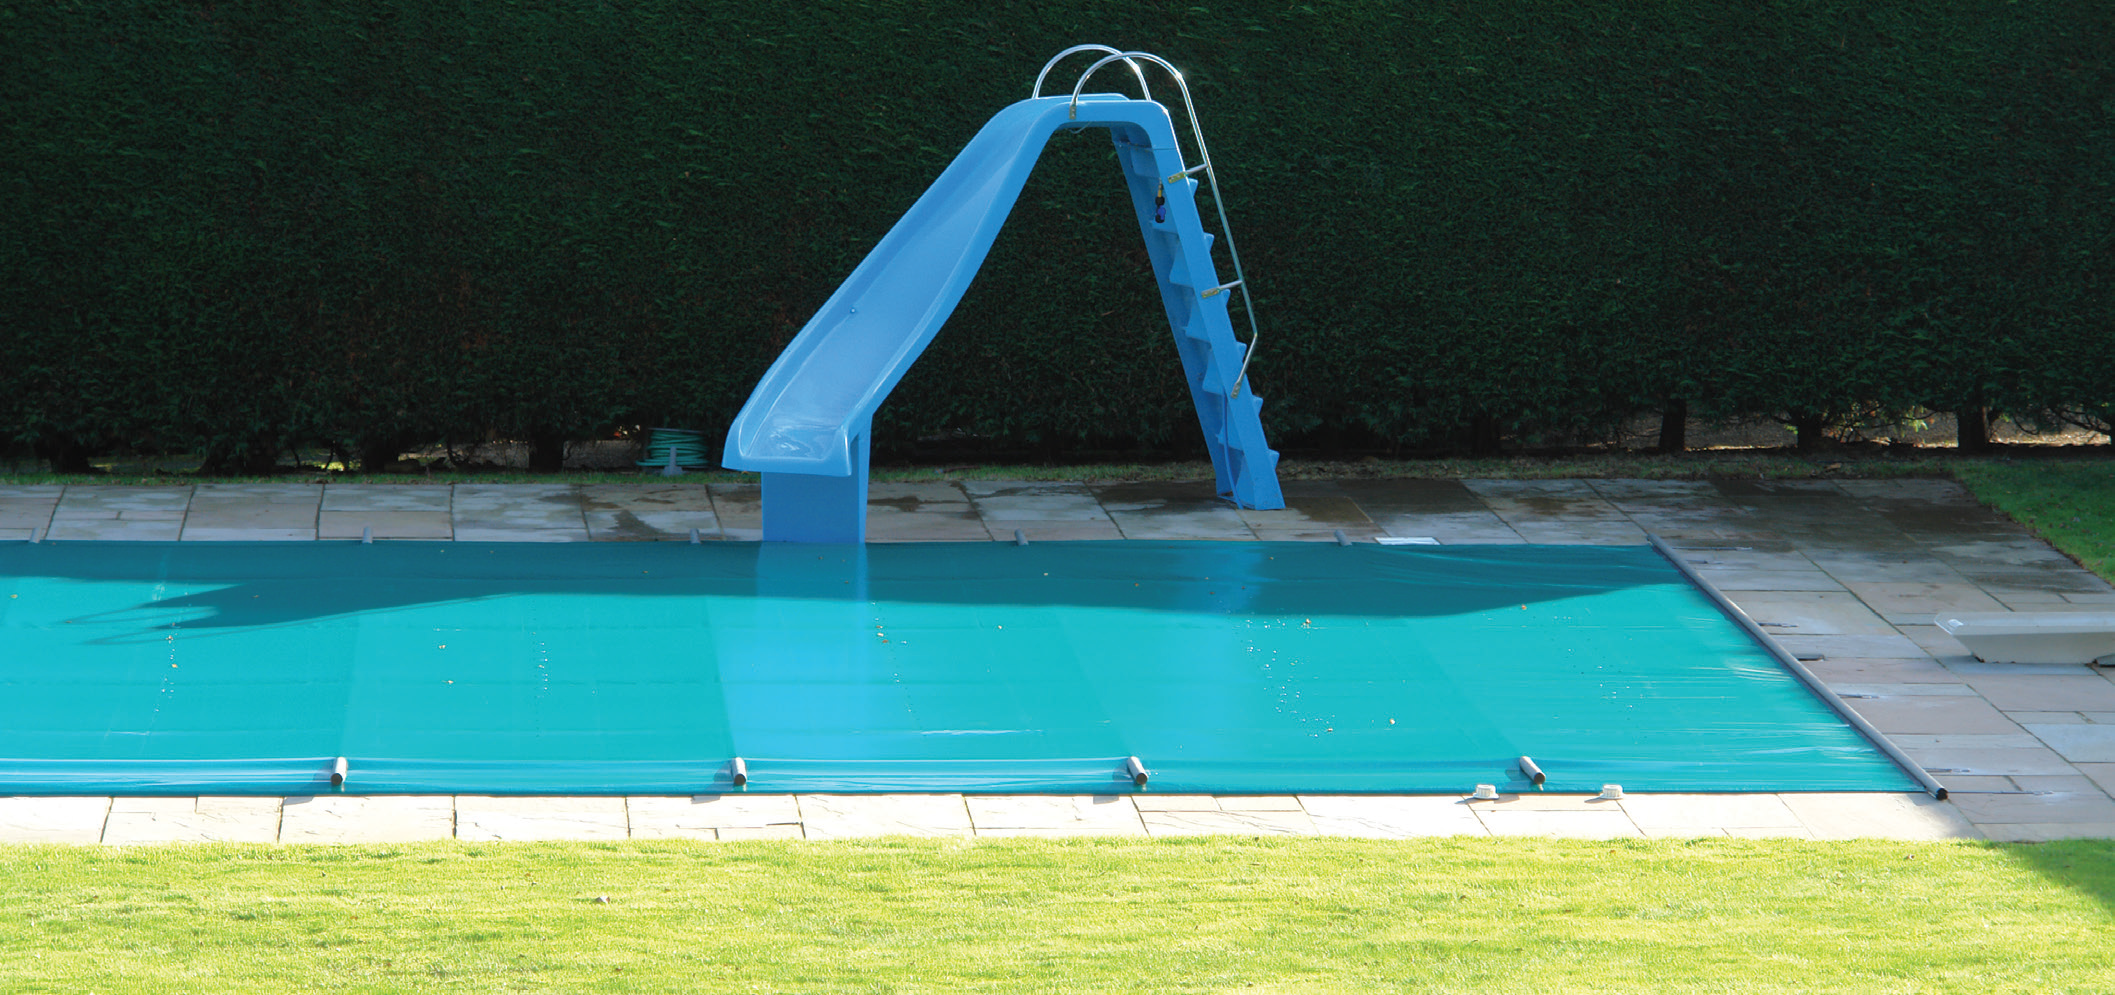 Plastica Focus On Swimming Pool Safety pic 1